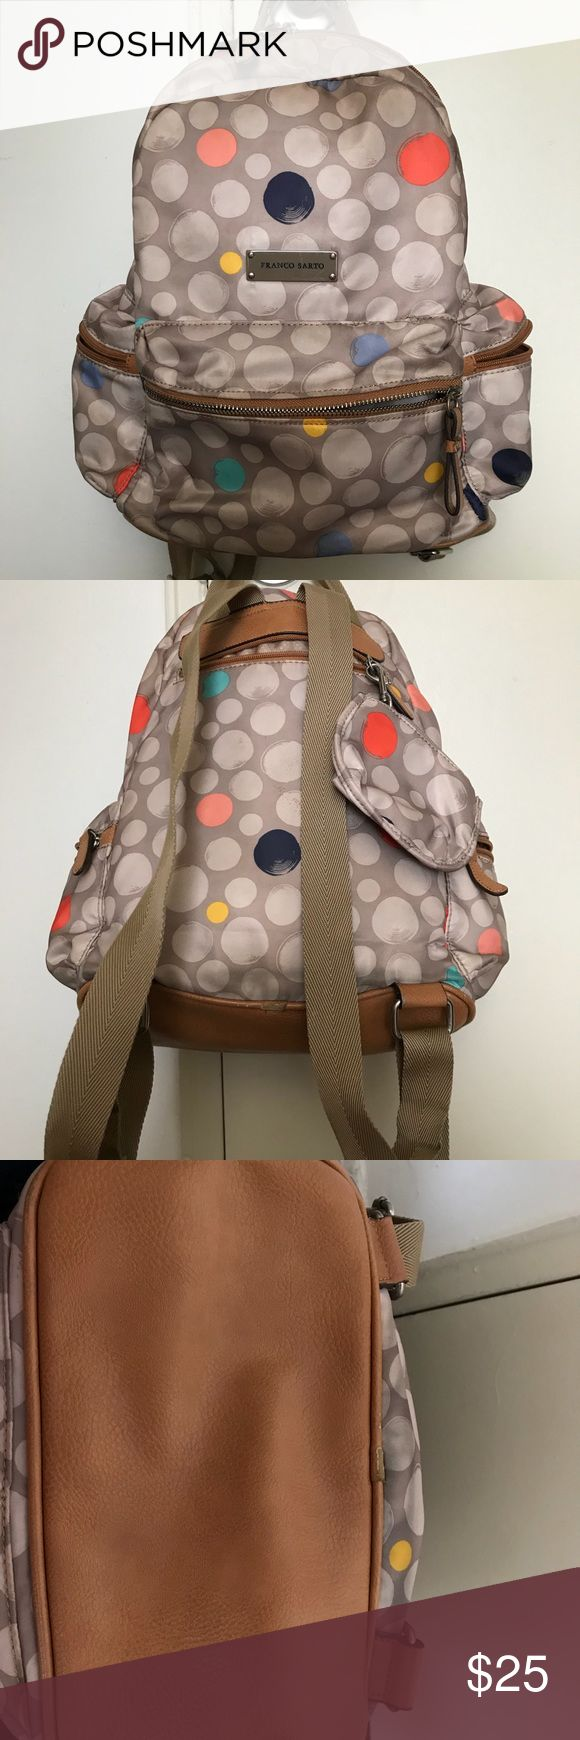 Franco Sarto polka dot backpack Tan & Multicolored polka dot backpack. Interior: one huge pocket, two cell phone pockets & one zippered pockets. Exterior: one front zippered pocket, one back zippered pocket & two side zippered pockets, also had a small detachable change purse. Adjustable straps. All together 8 pockets and one detachable change purse. I used it a lot for traveling but got a new back pack. All damage/defected pictured. All reasonable offers accepted. Franco Sarto Bags…